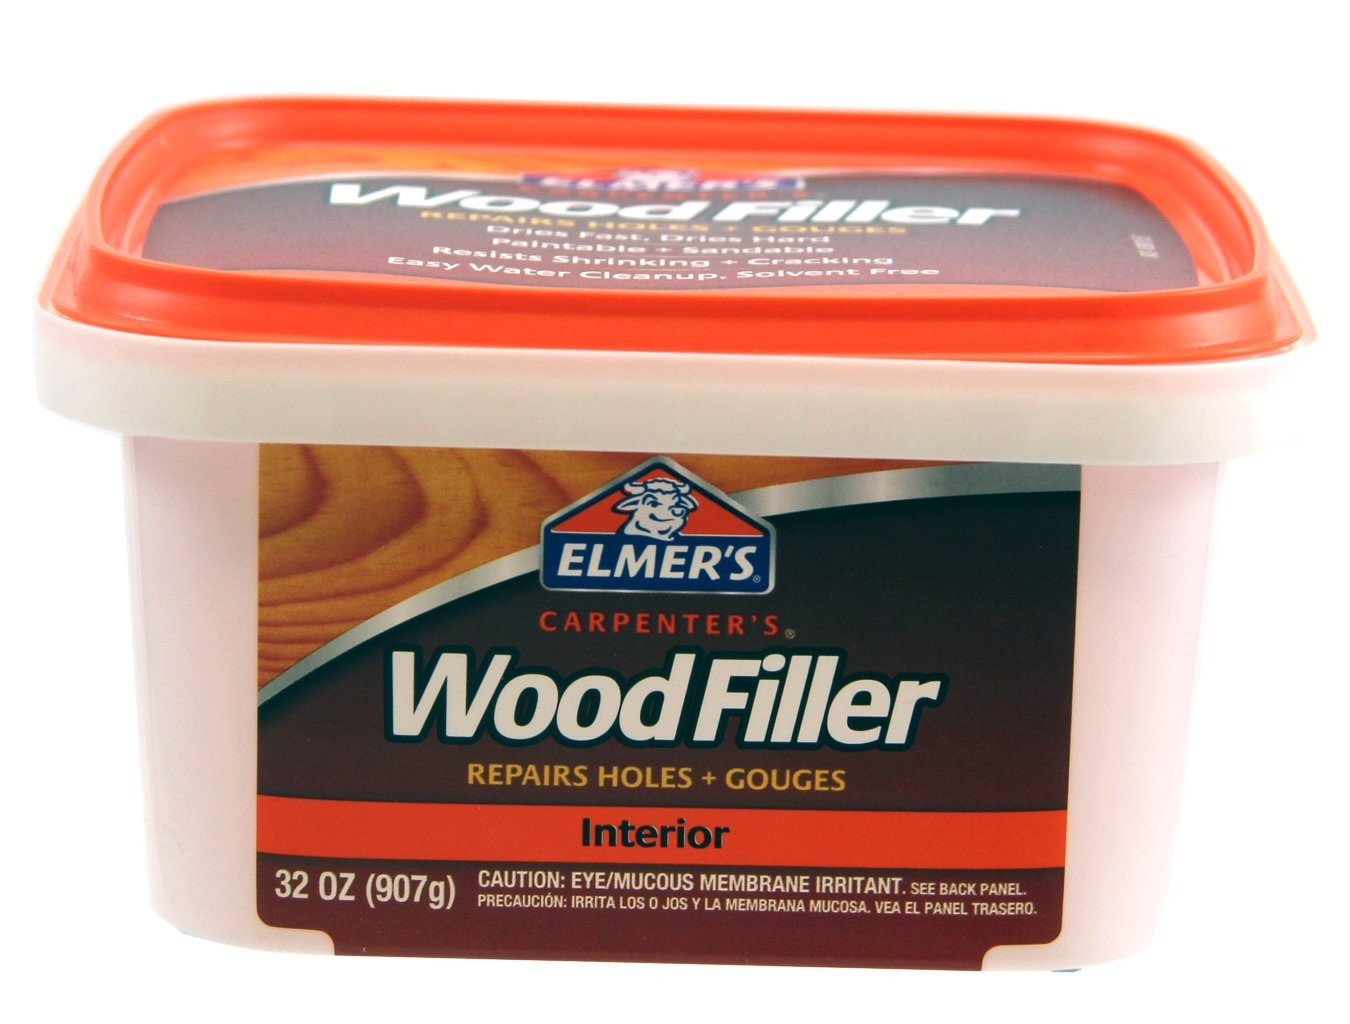 Wood Filler for Hardwood Floor Gaps Of Amazon Com Elmers E848d12 Carpenters Wood Filler 1 2 Pint within Amazon Com Elmers E848d12 Carpenters Wood Filler 1 2 Pint Elmers Products Home Improvement